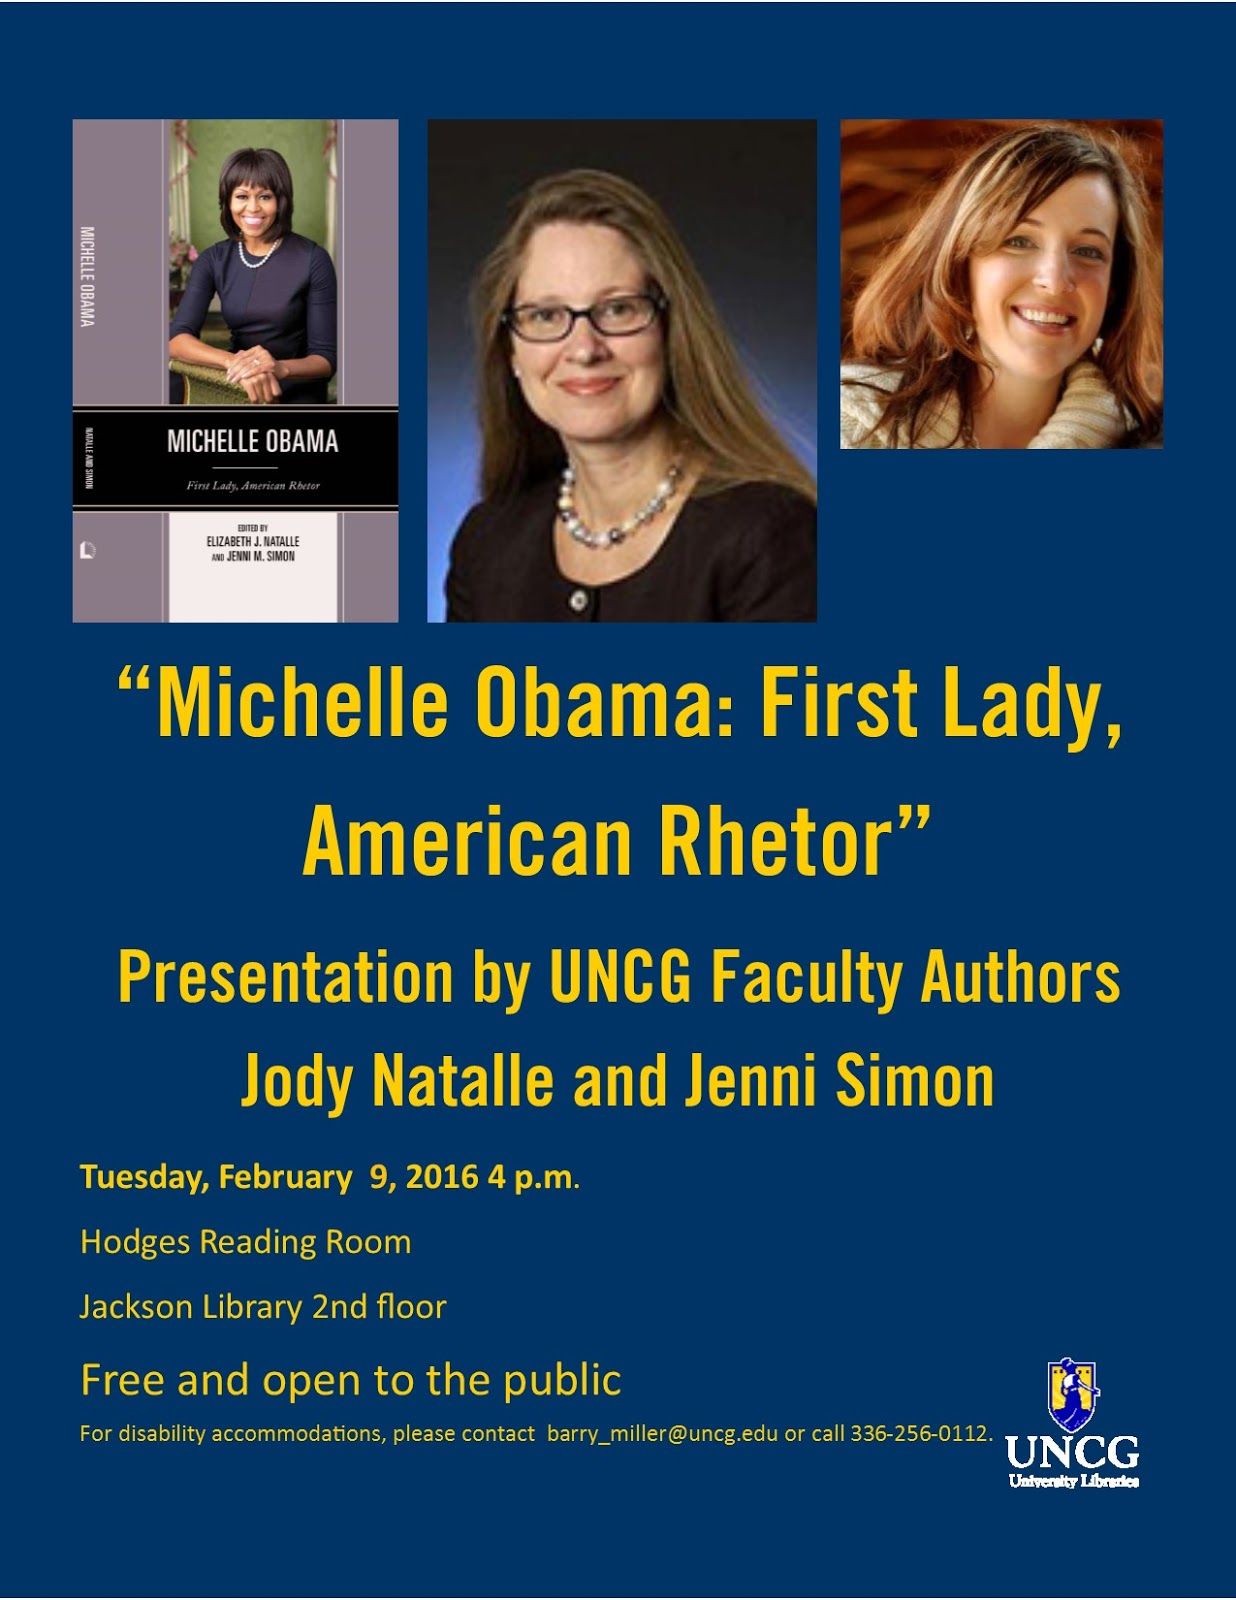 """Tuesday, February 9: """"Michelle Obama: First Lady, American Rhetor""""  presentation by UNCG faculty authors Jody Natalle and Jenni Simon."""